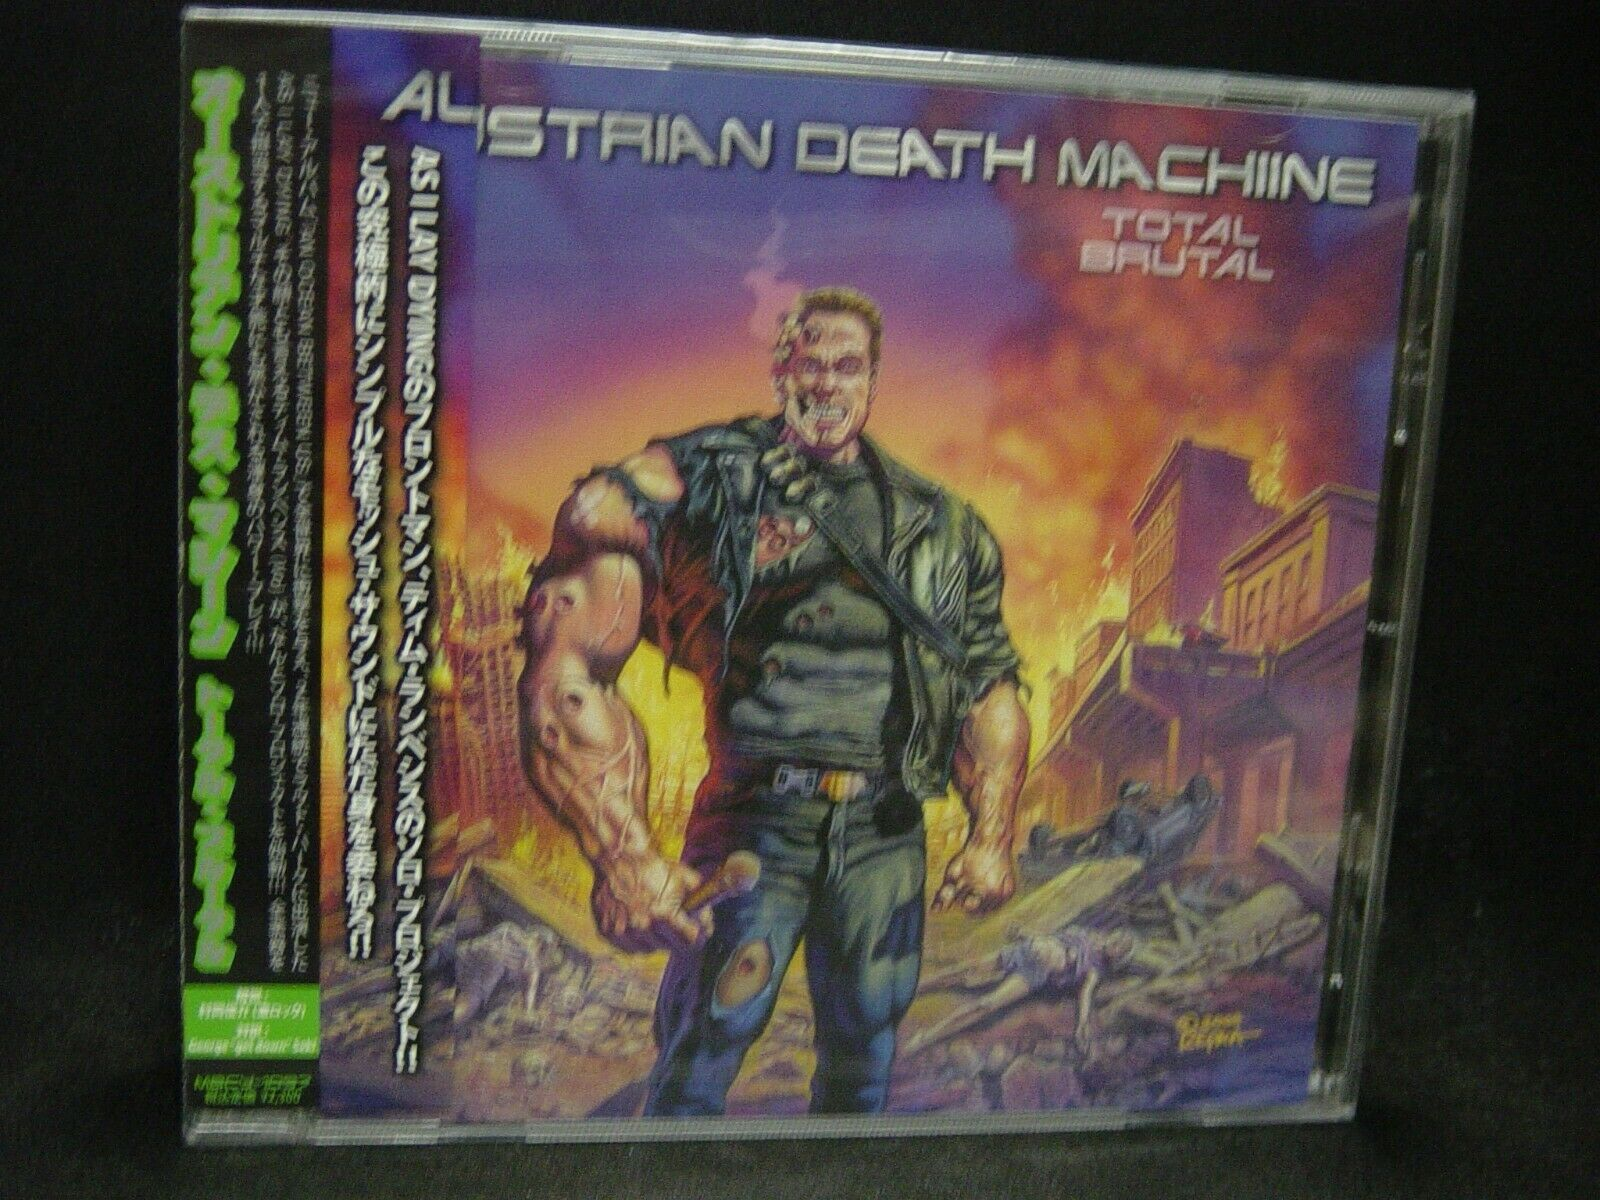 Austrian Death Machine Total Brutal Japan Cd As I Lay Dying Us